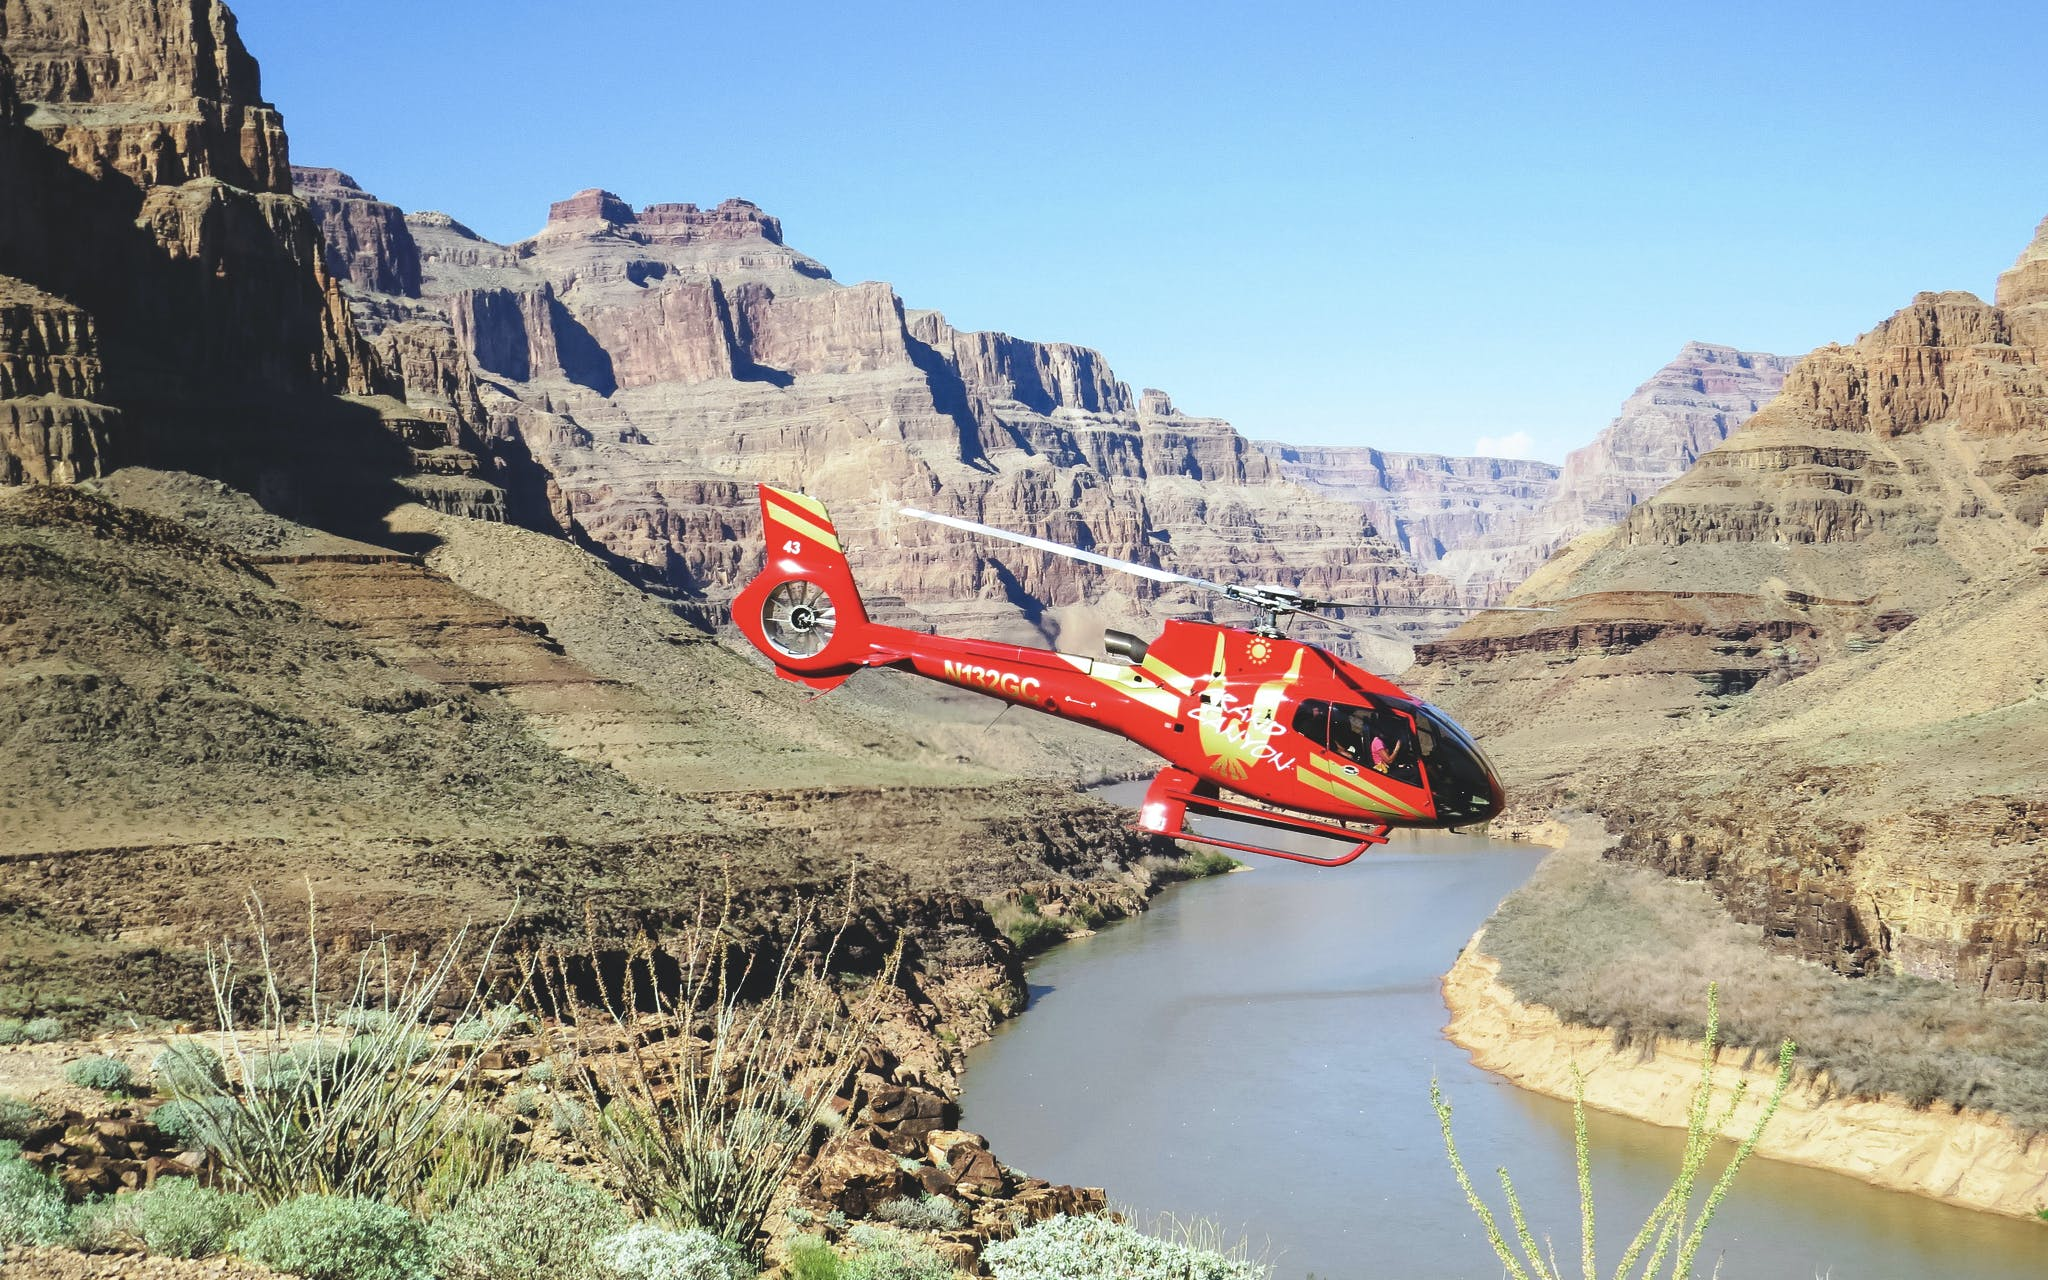 GC Heli Tours